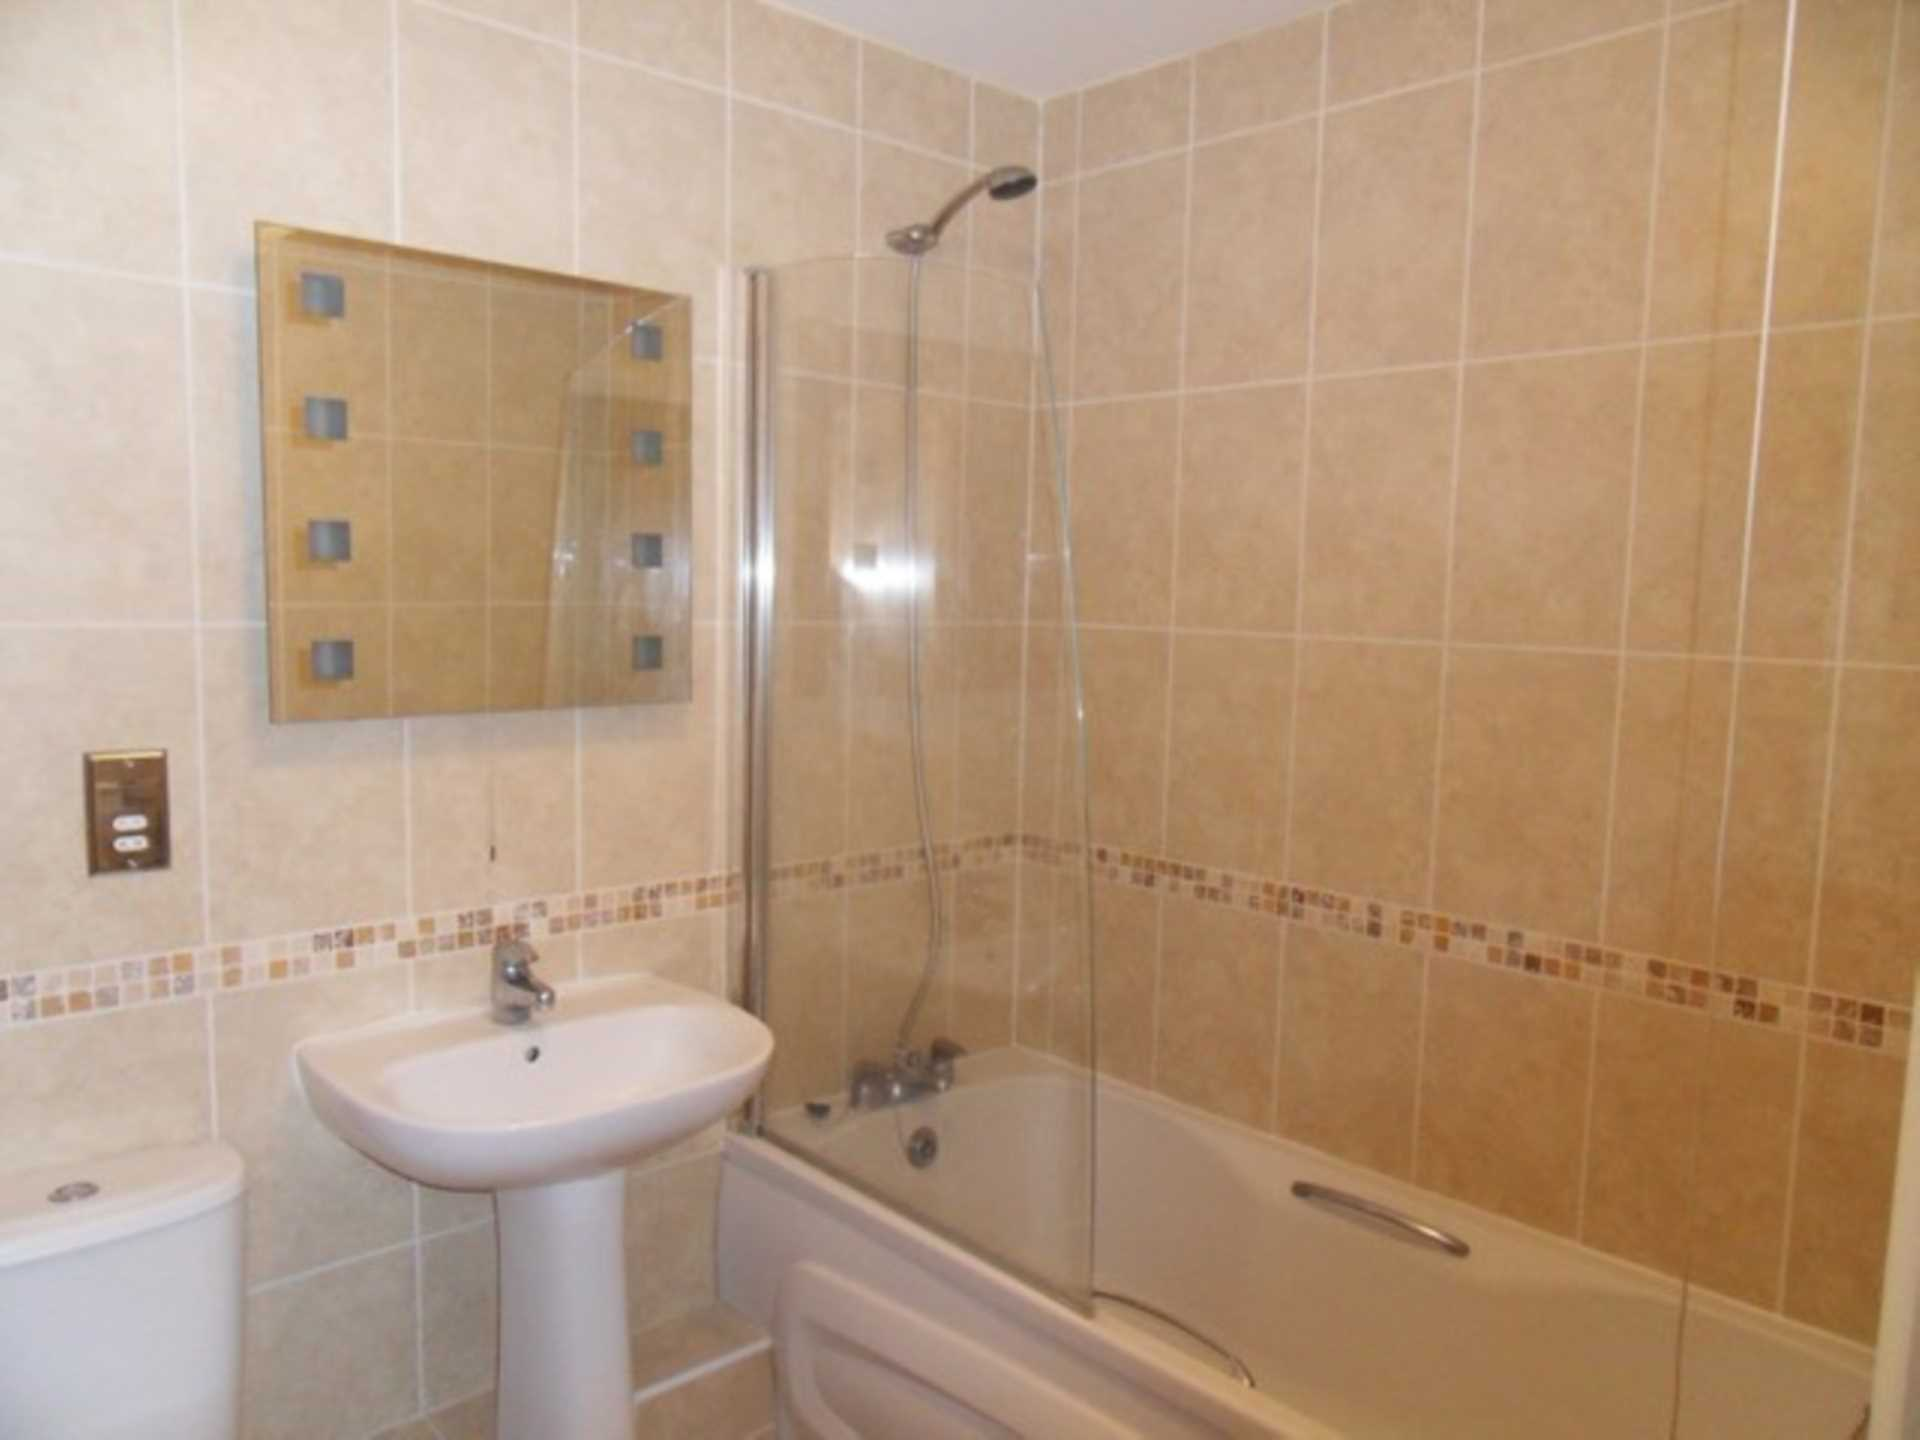 2 bed flat to rent in The Orkneys, Blandford Forum, Blandford Forum  - Property Image 4